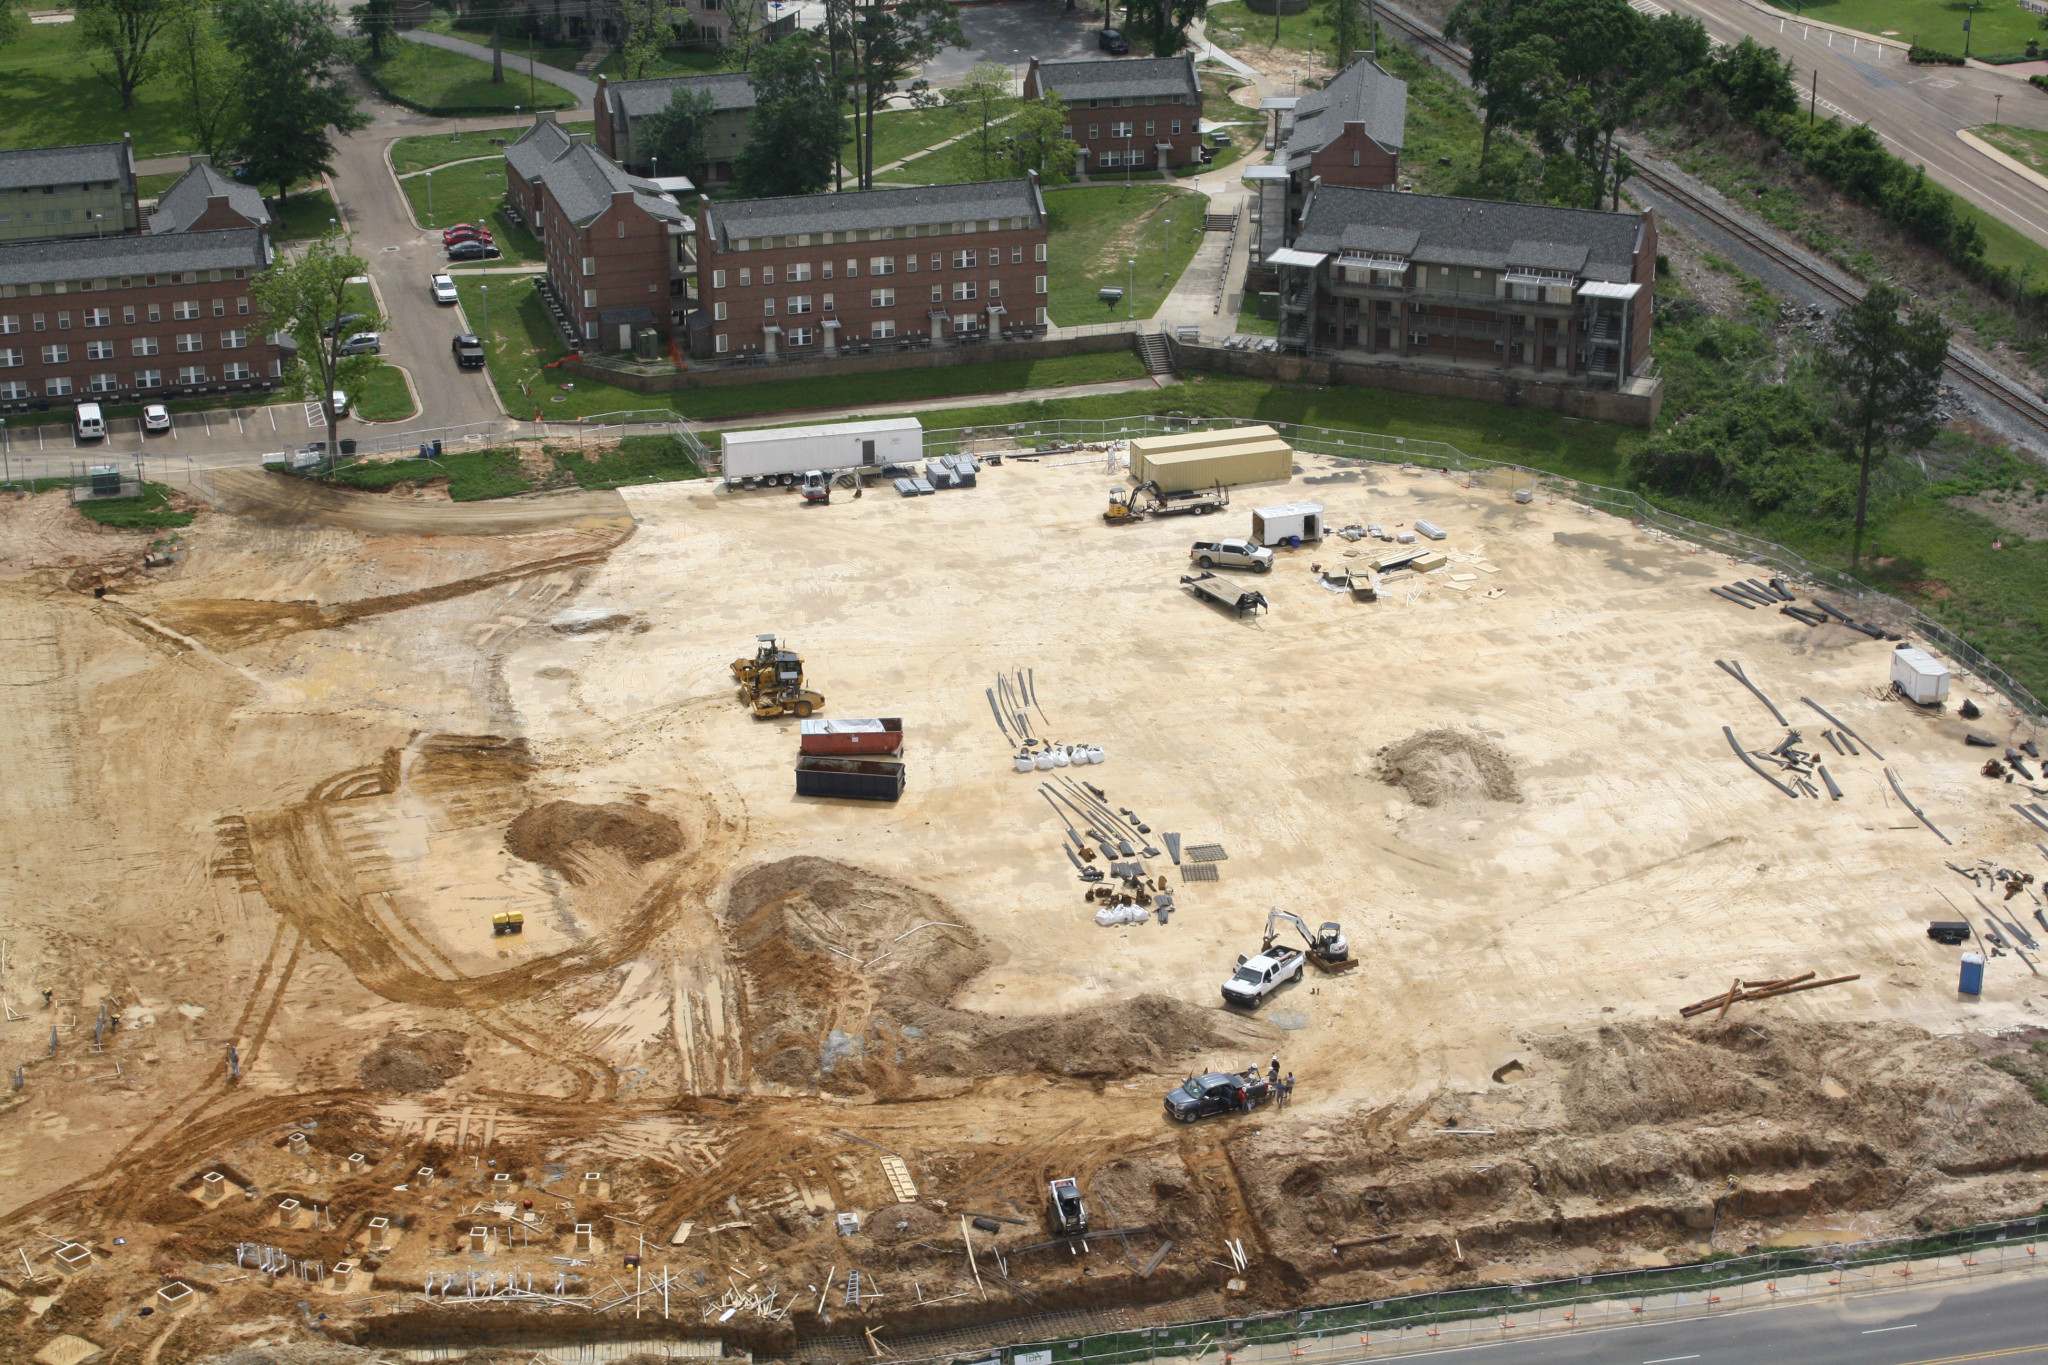 A current aerial view of early construction work going on at the same site to build Tech's new baseball field and facility.